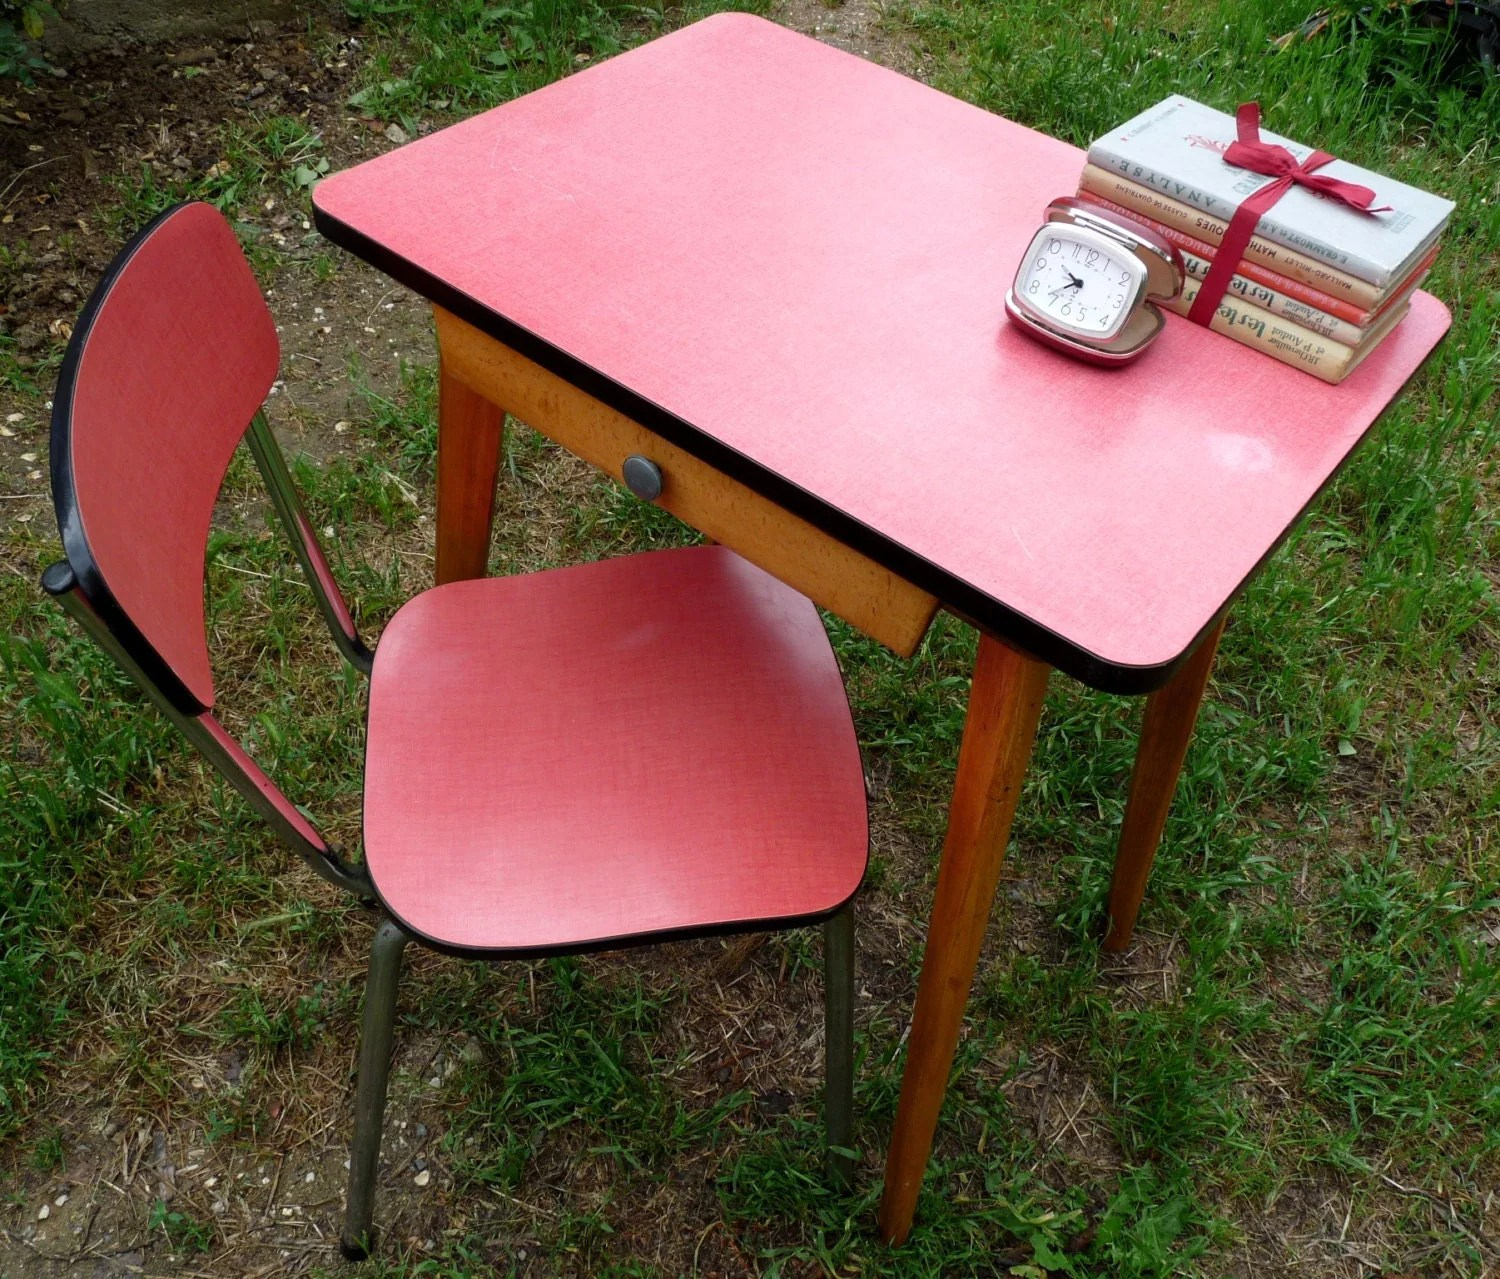 retro desk chair covers cork vintage formica with small pink table